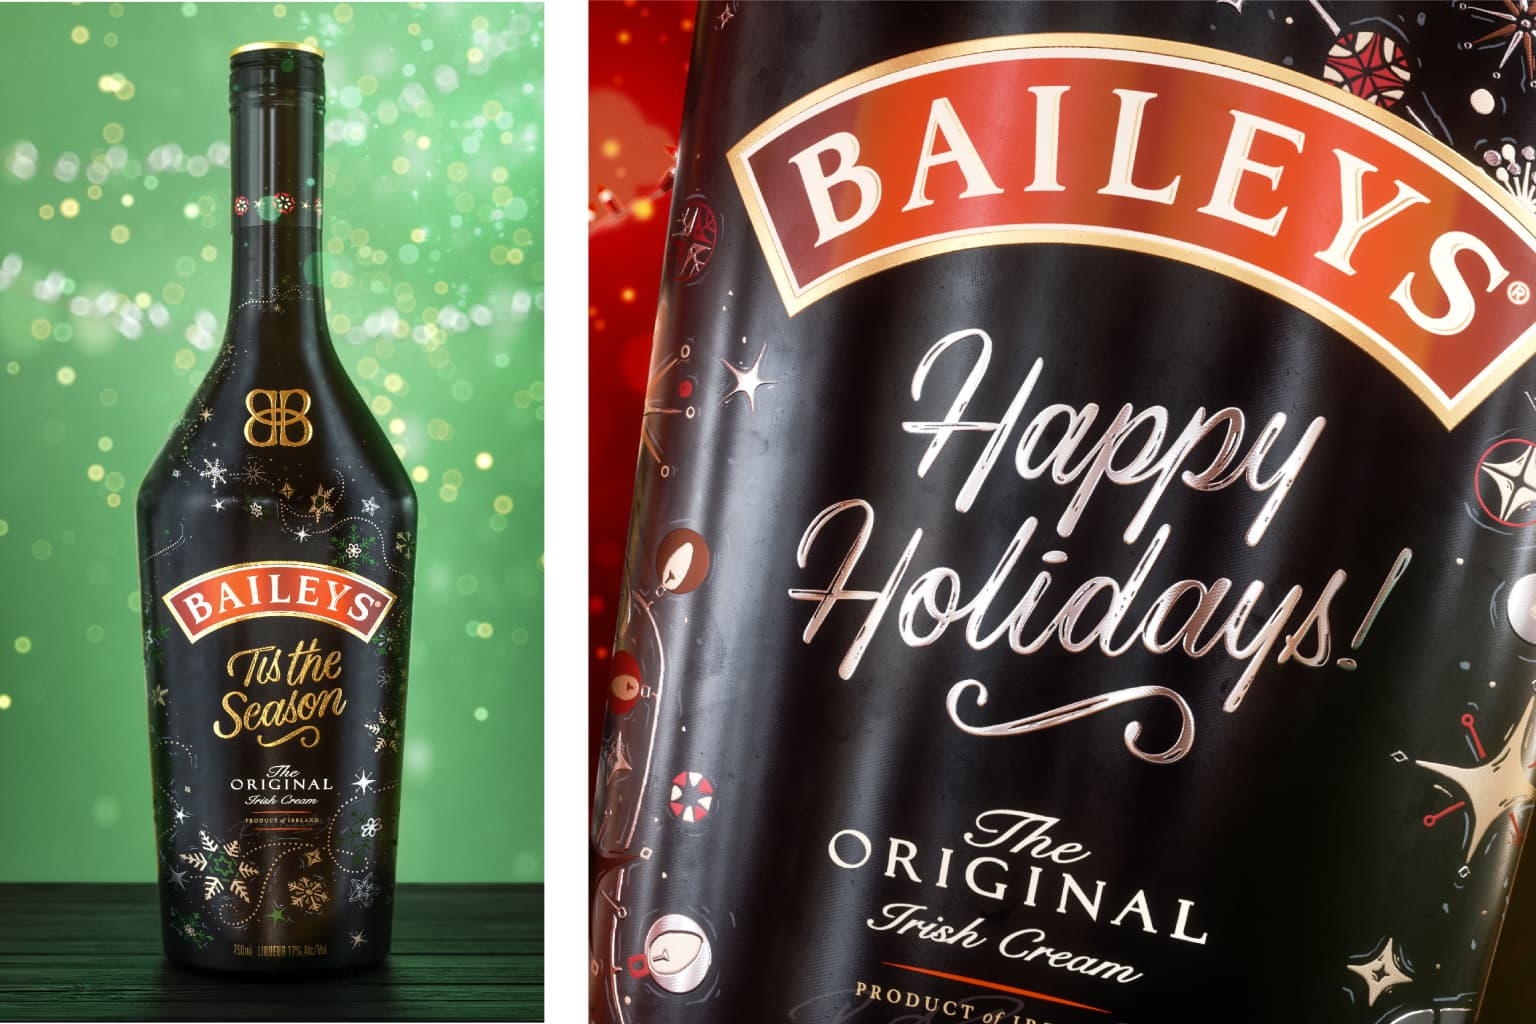 Baileys Festive Pack - Limited Edition